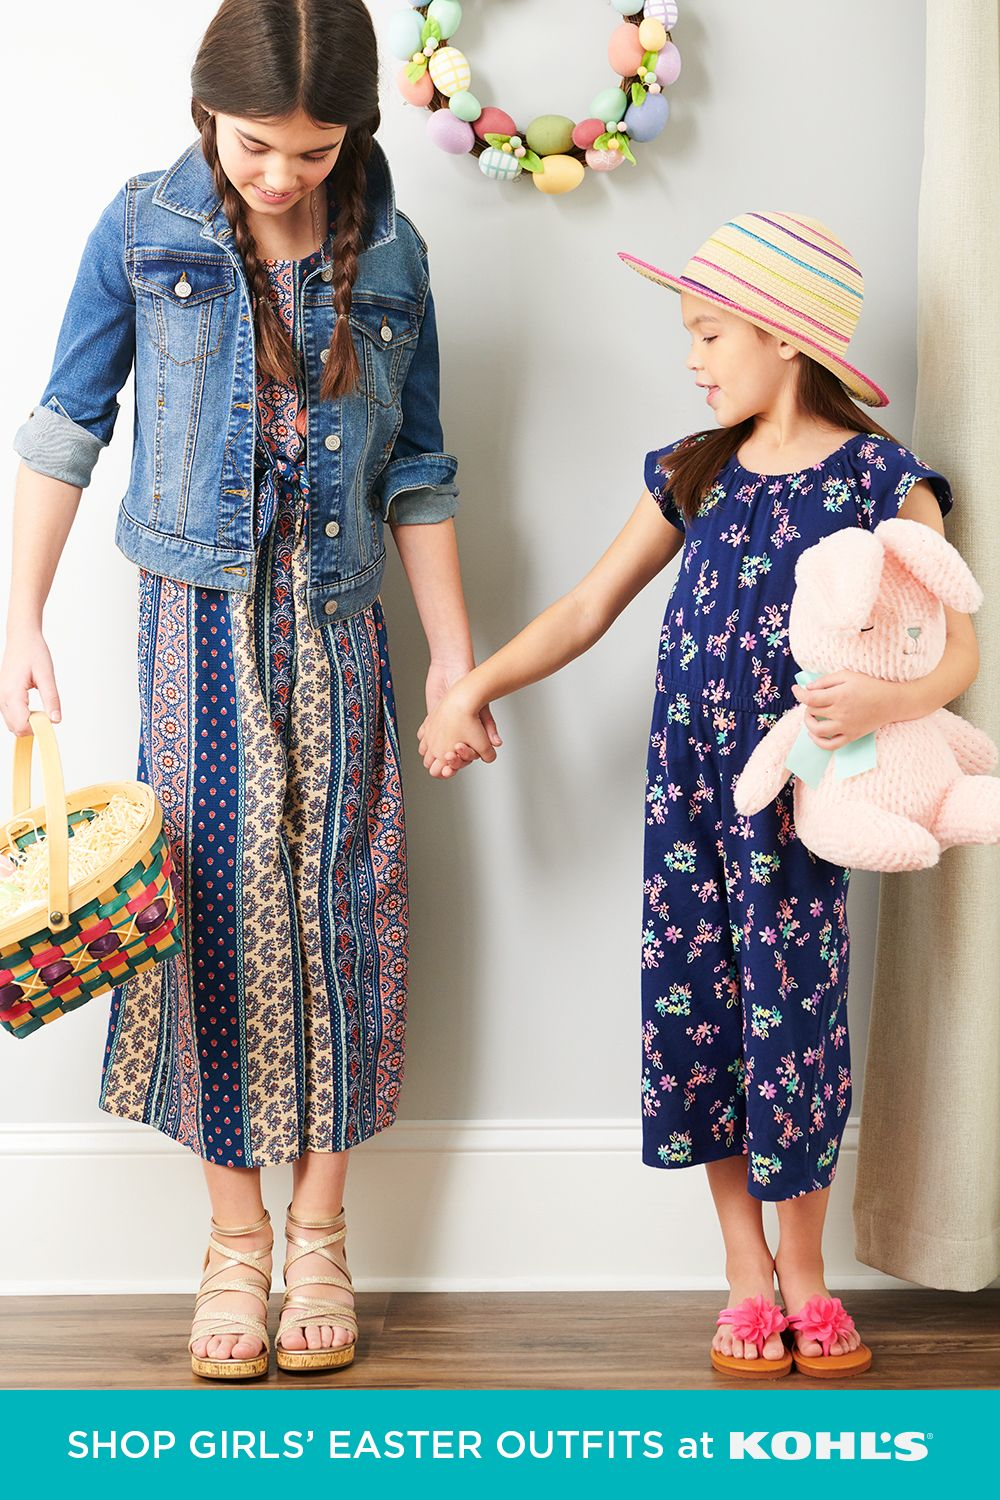 Your girls will be celebrating Easter in style with cute and colorful outfits. Make sure they're able to move and play all day long in a comfy jumpsuit and sandals. Add a denim jacket or sun hat for the sweetest finishing touches! Shop Easter styles and more at Kohl's and Kohls.com. #easter #kidsstyle